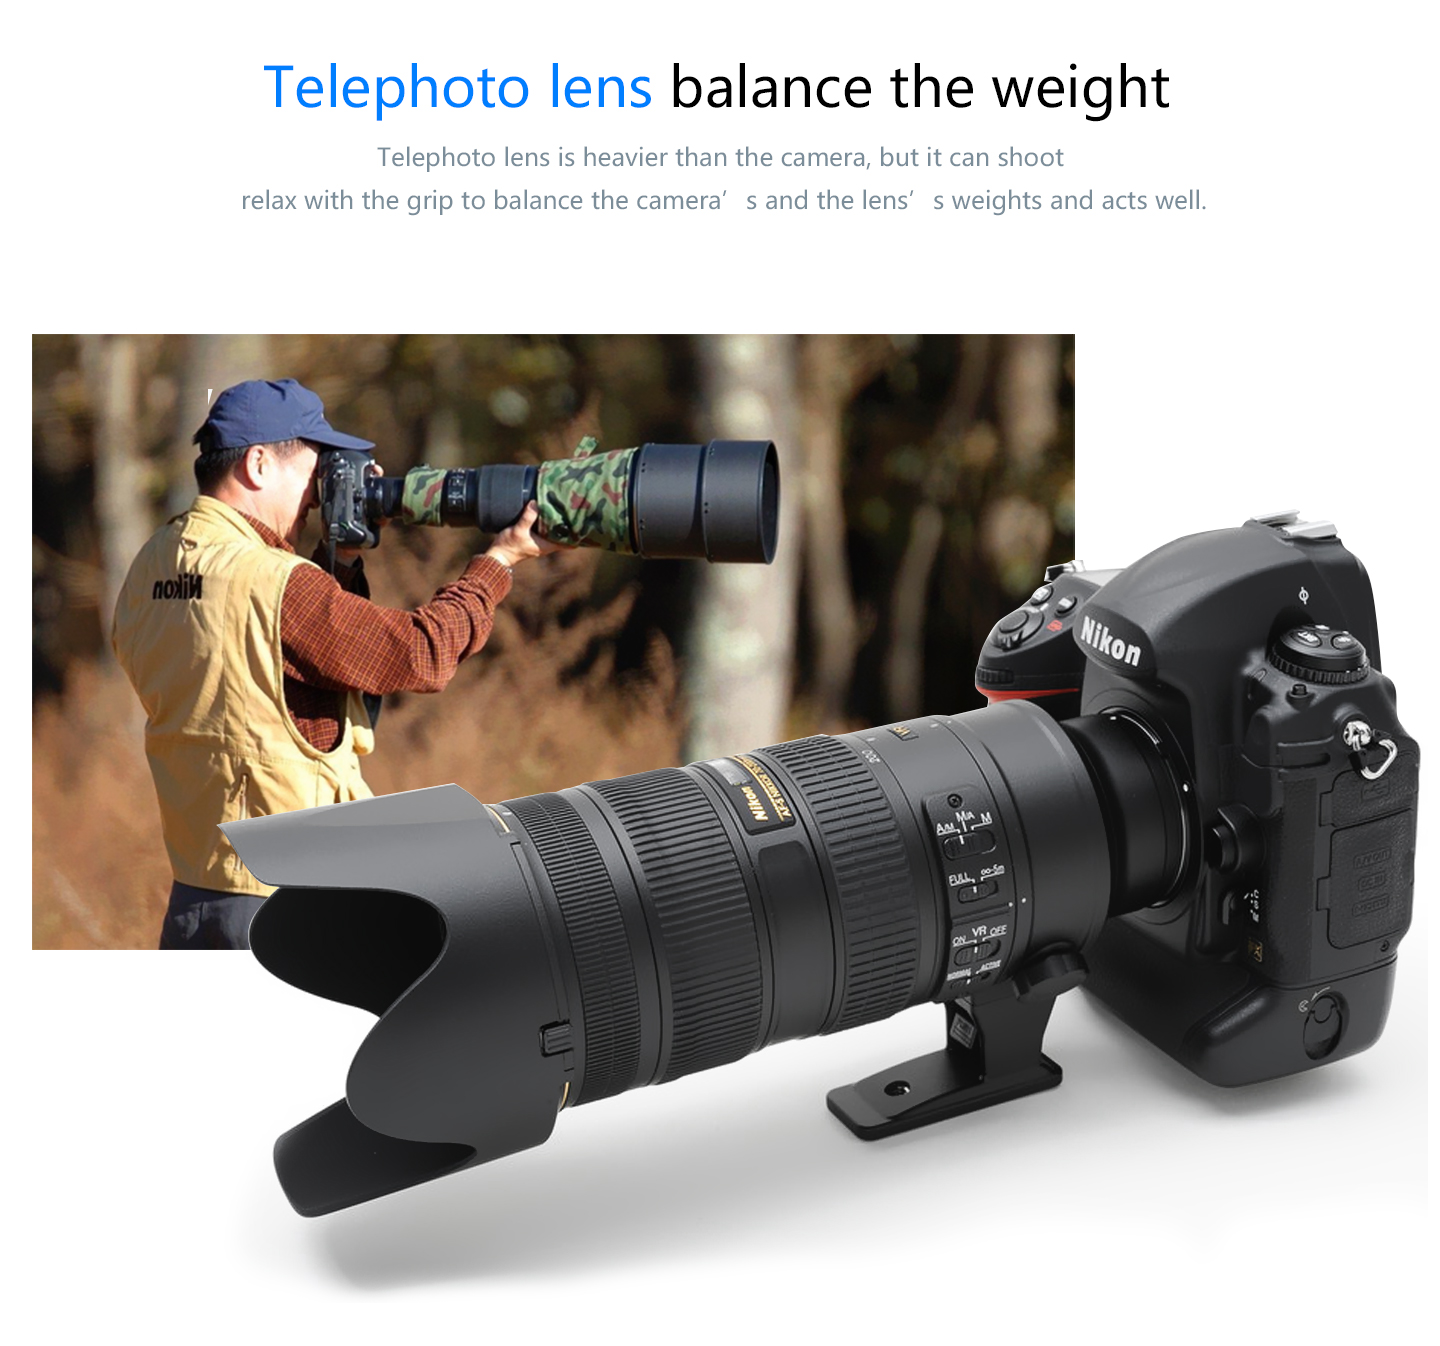 Telephoto lens banlance the weight